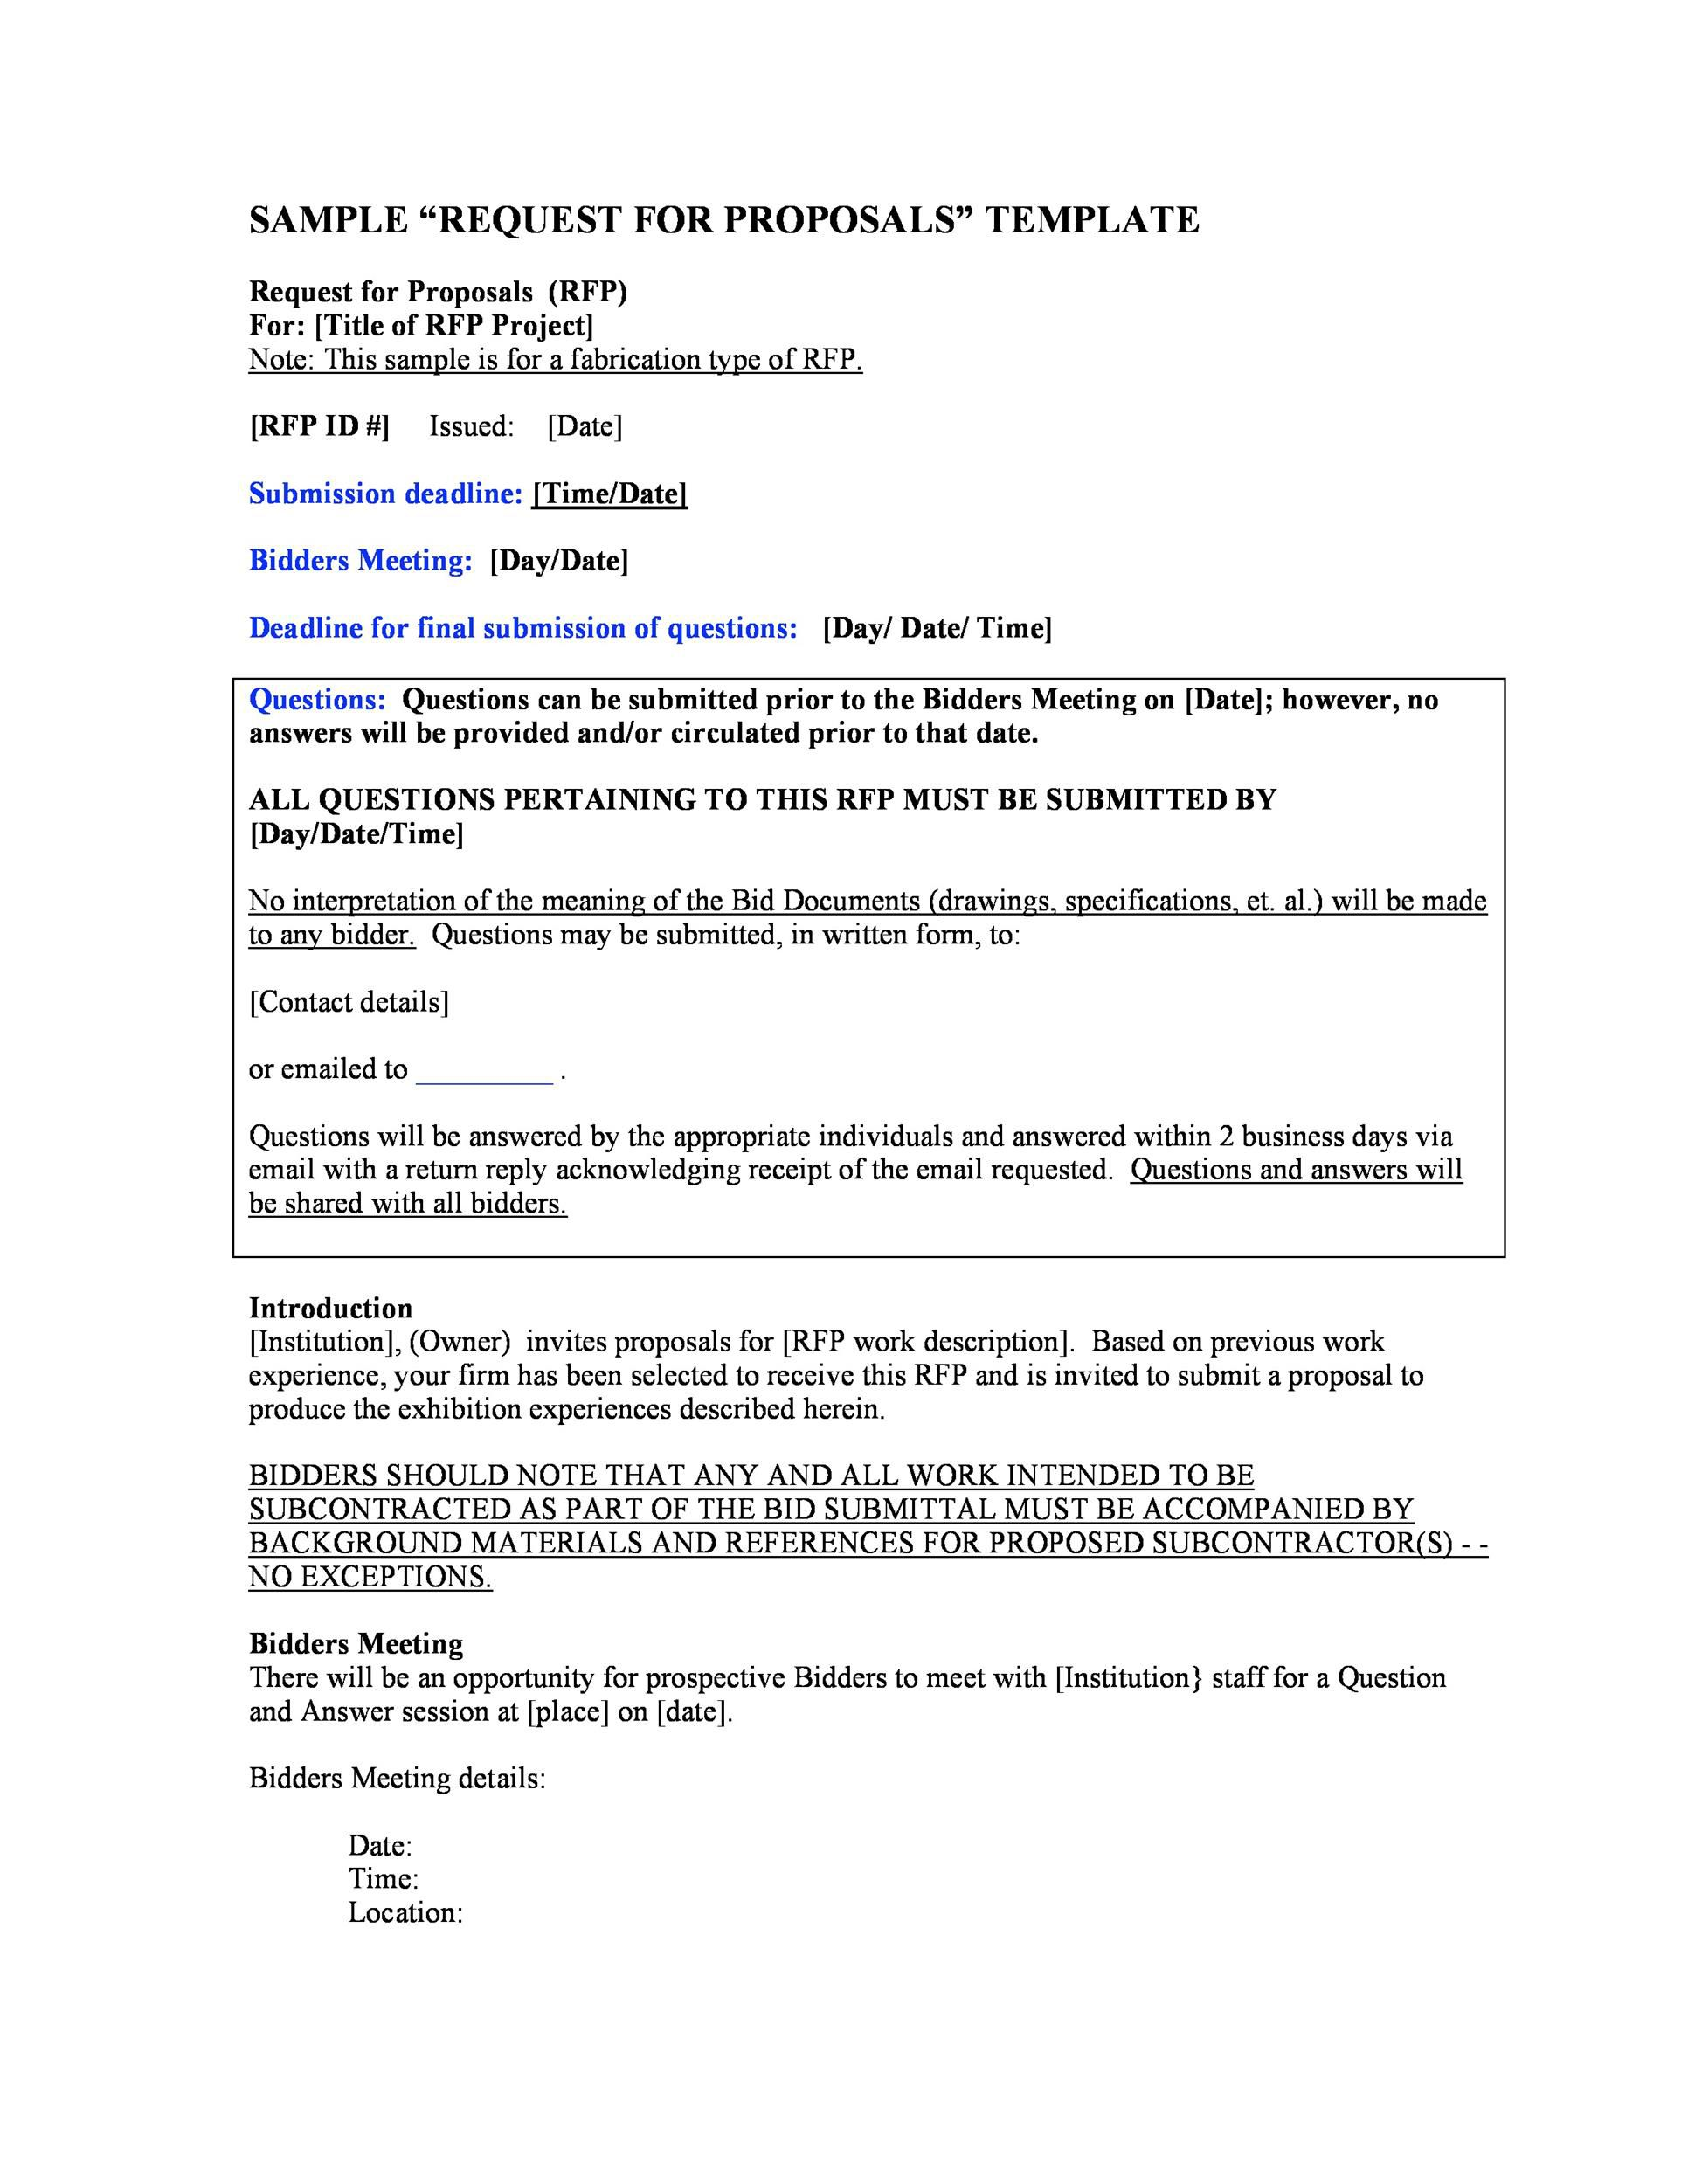 004 Awful Request For Proposal Response Word Template Image Full